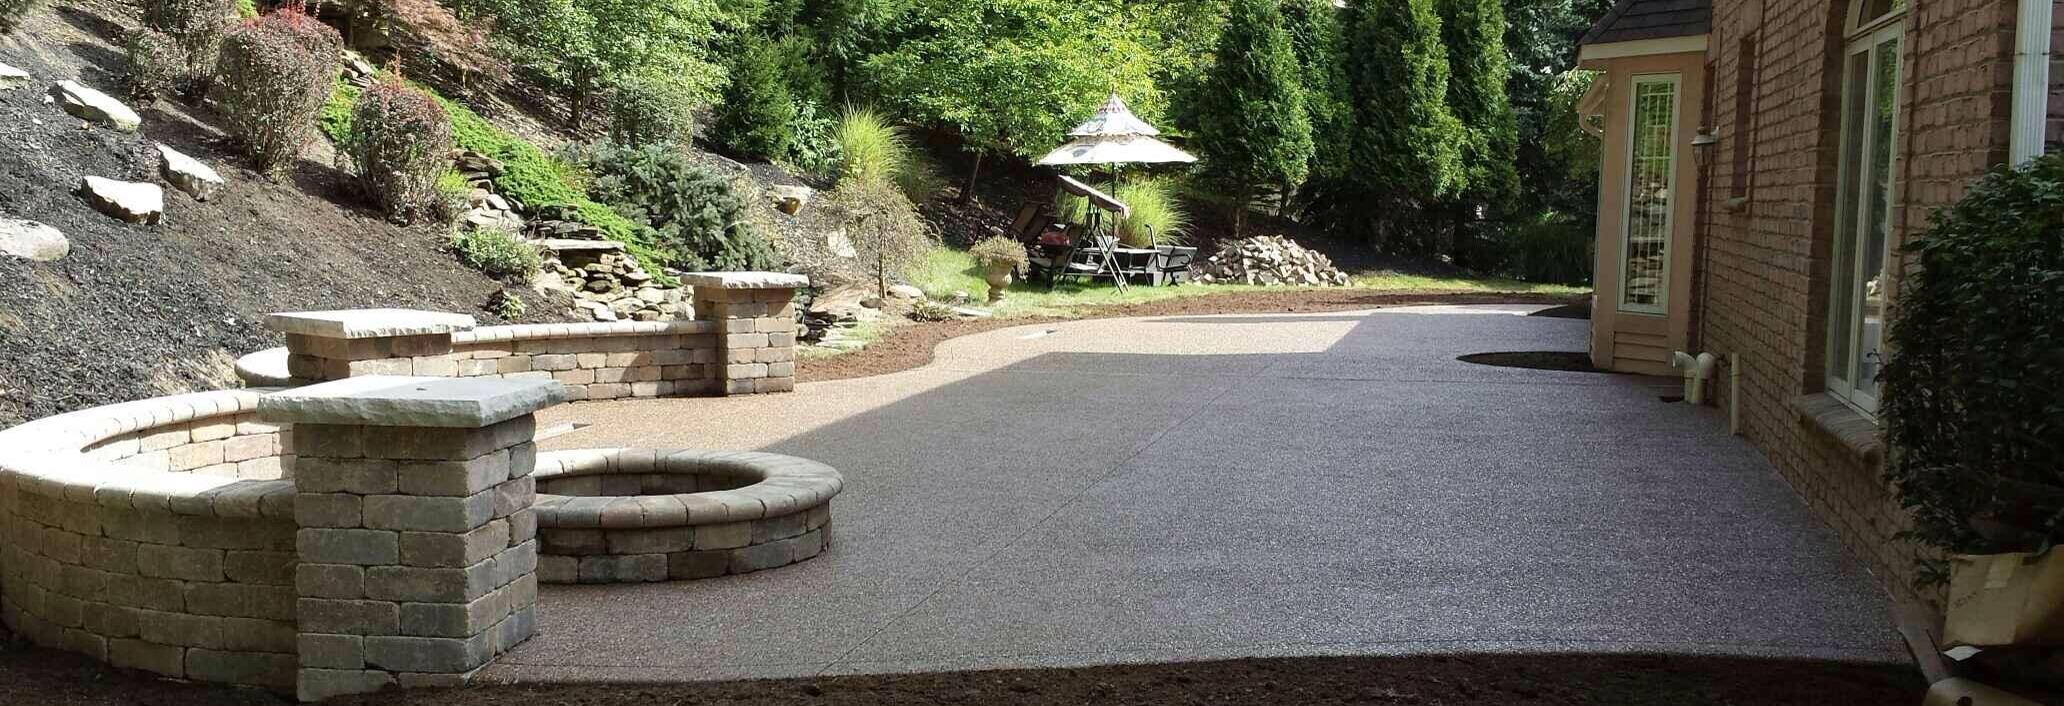 Retaining Walls Pavers & Concrete work Landscape Maintenance Hardscape  Construction